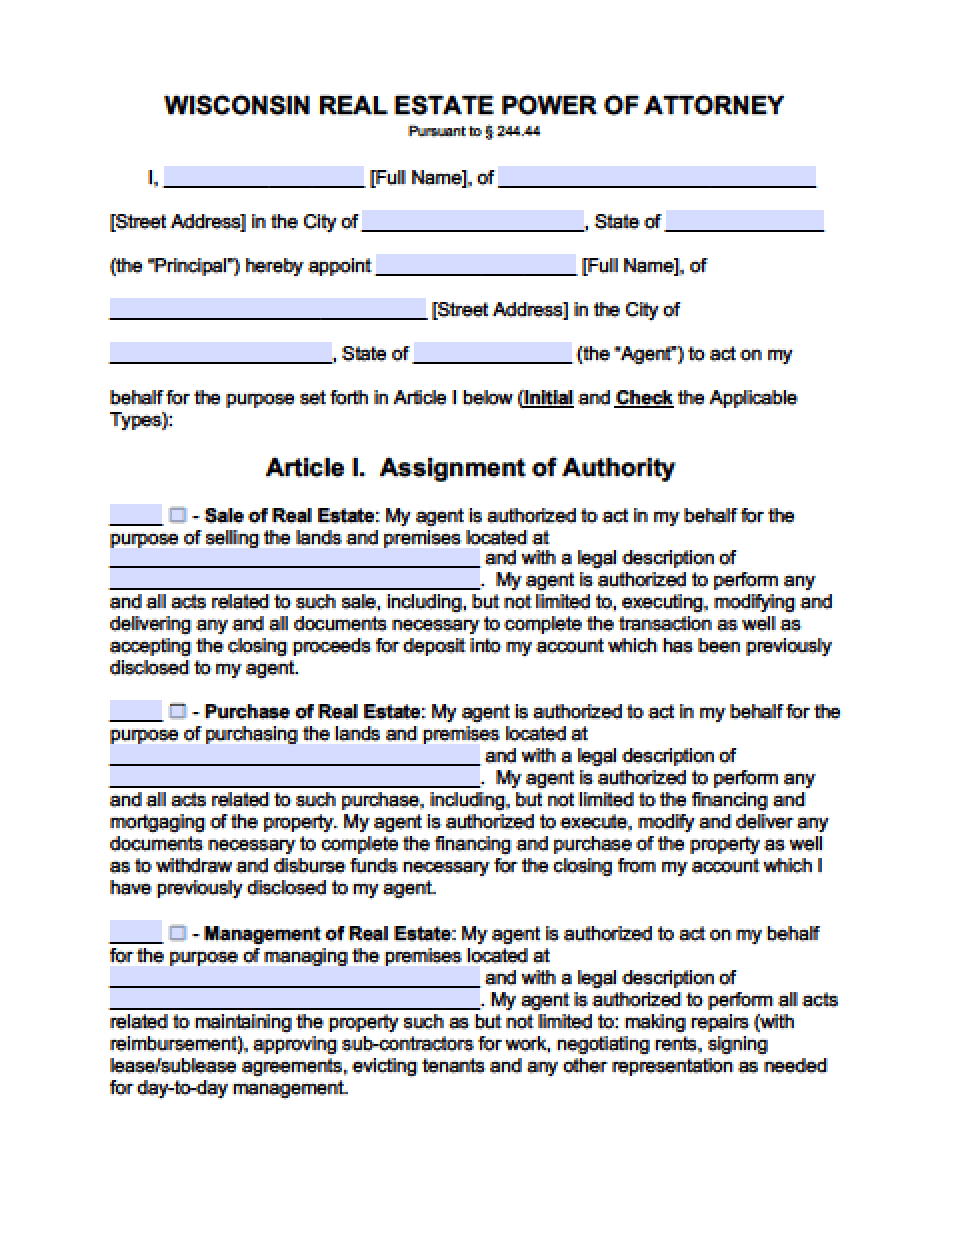 Wisconsin real estate only power of attorney form power of wisconsin real estate only power of attorney form power of attorney power of attorney falaconquin